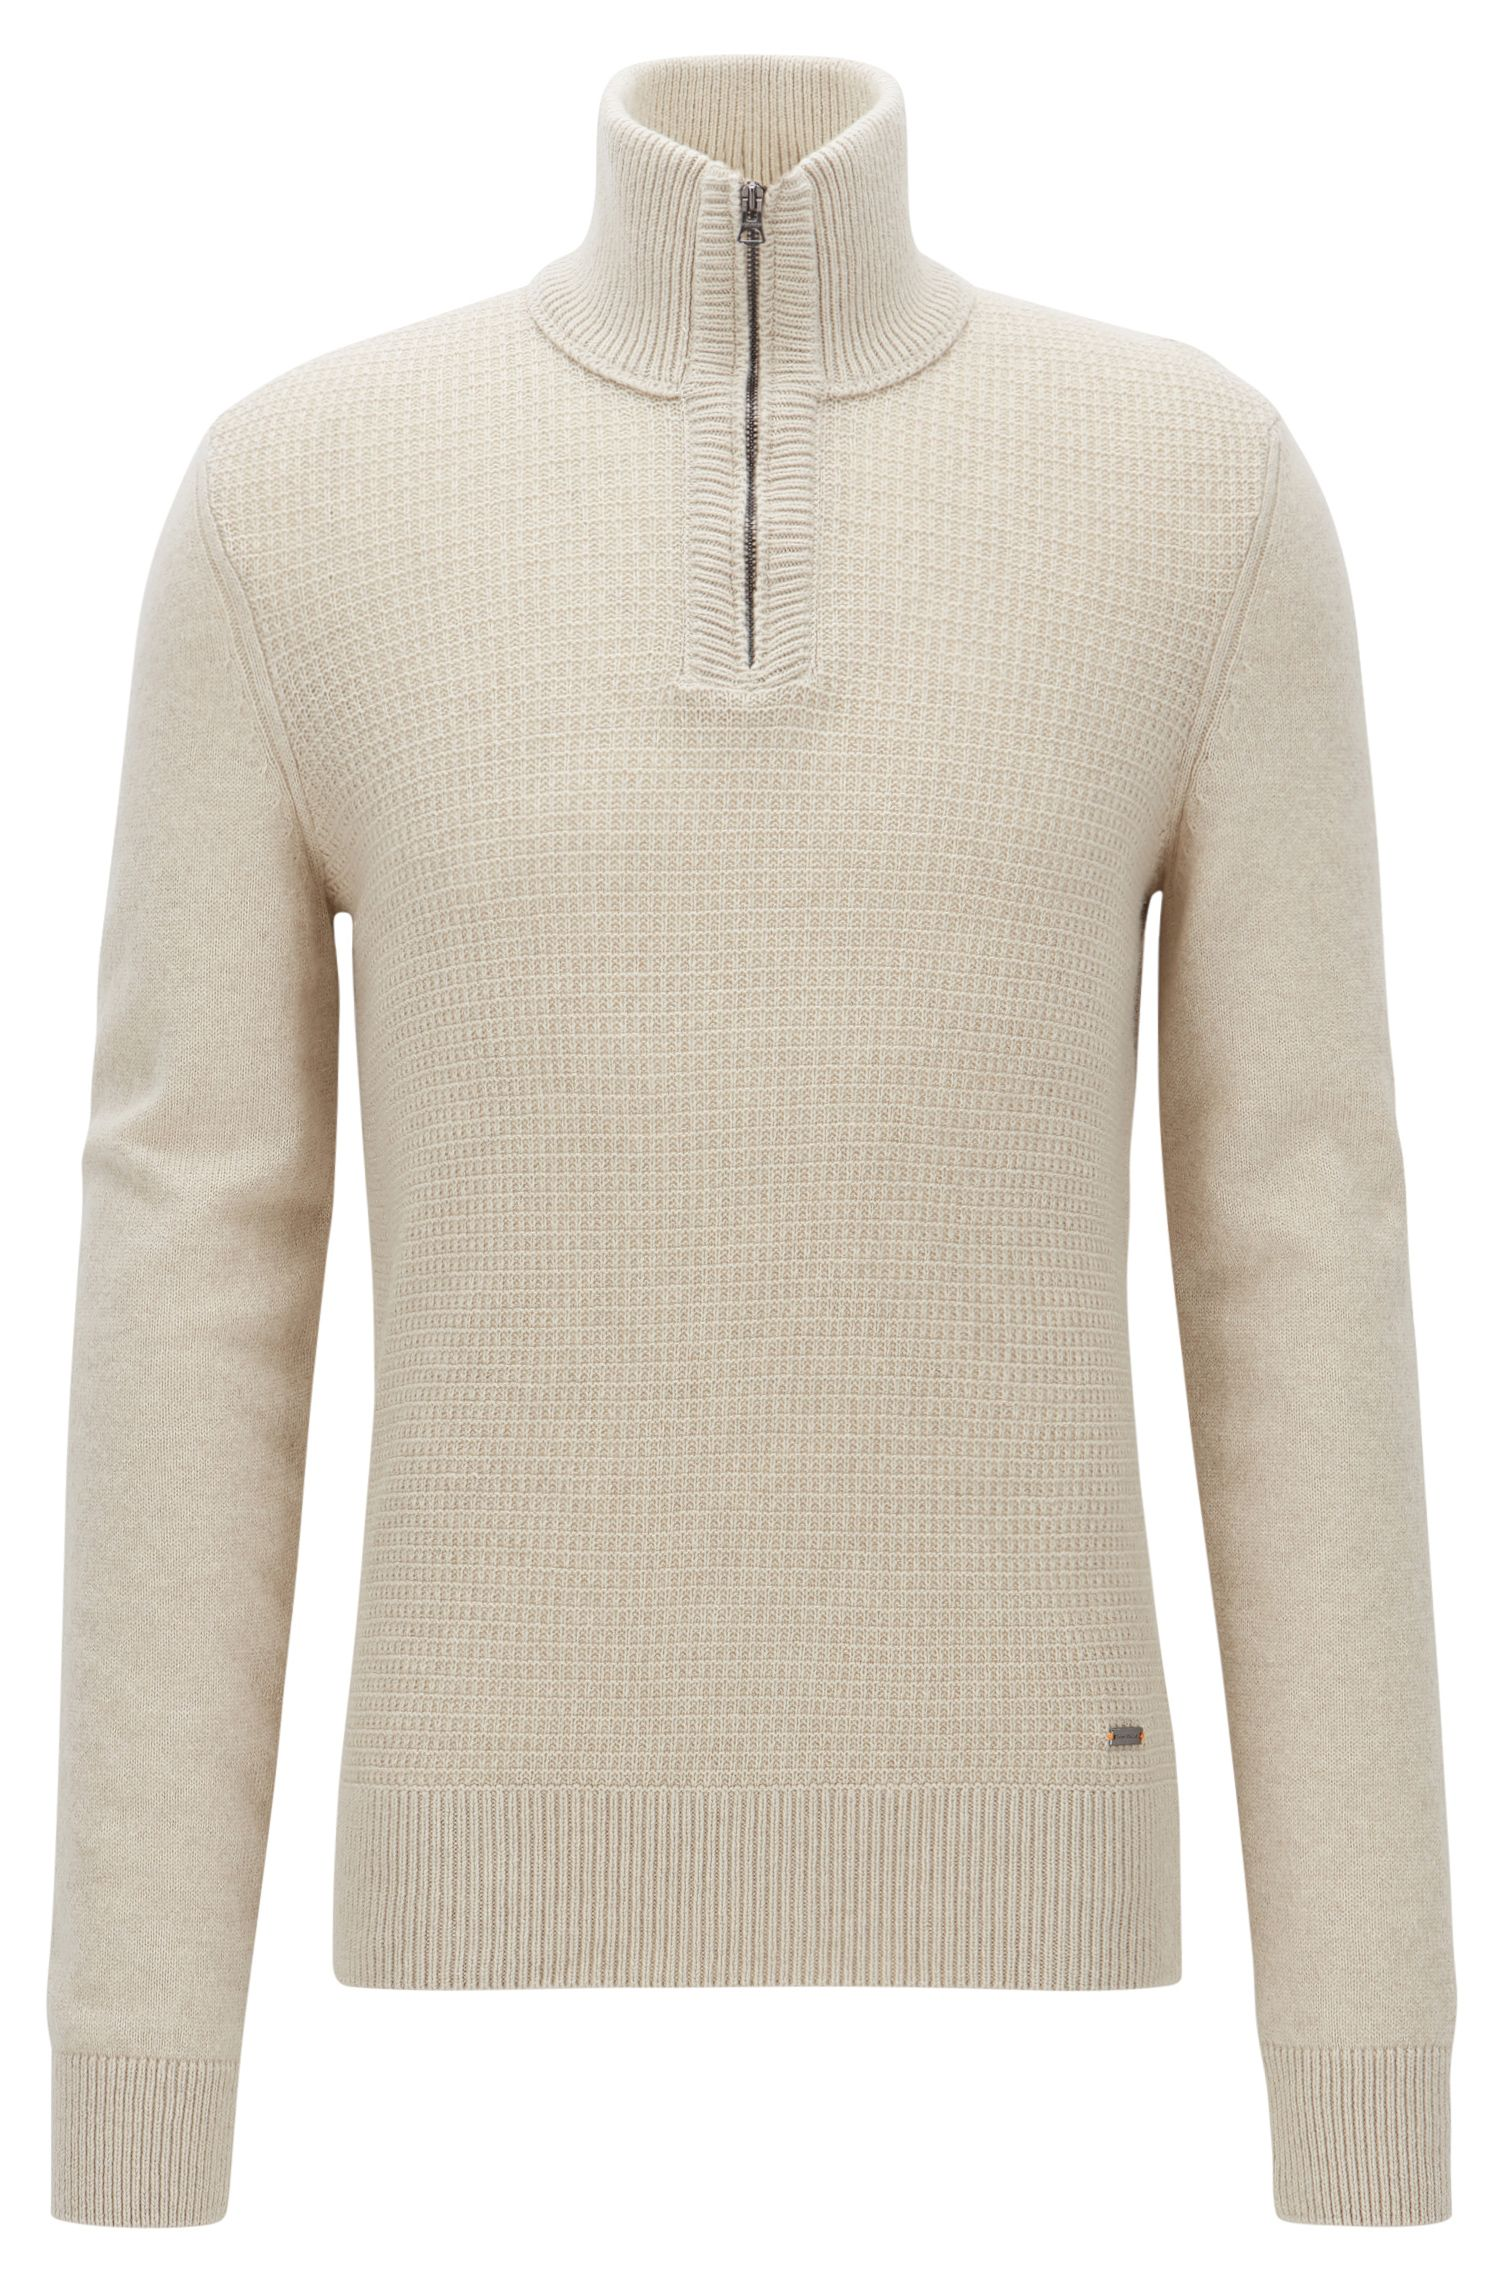 Troyer sweater with structured front panel